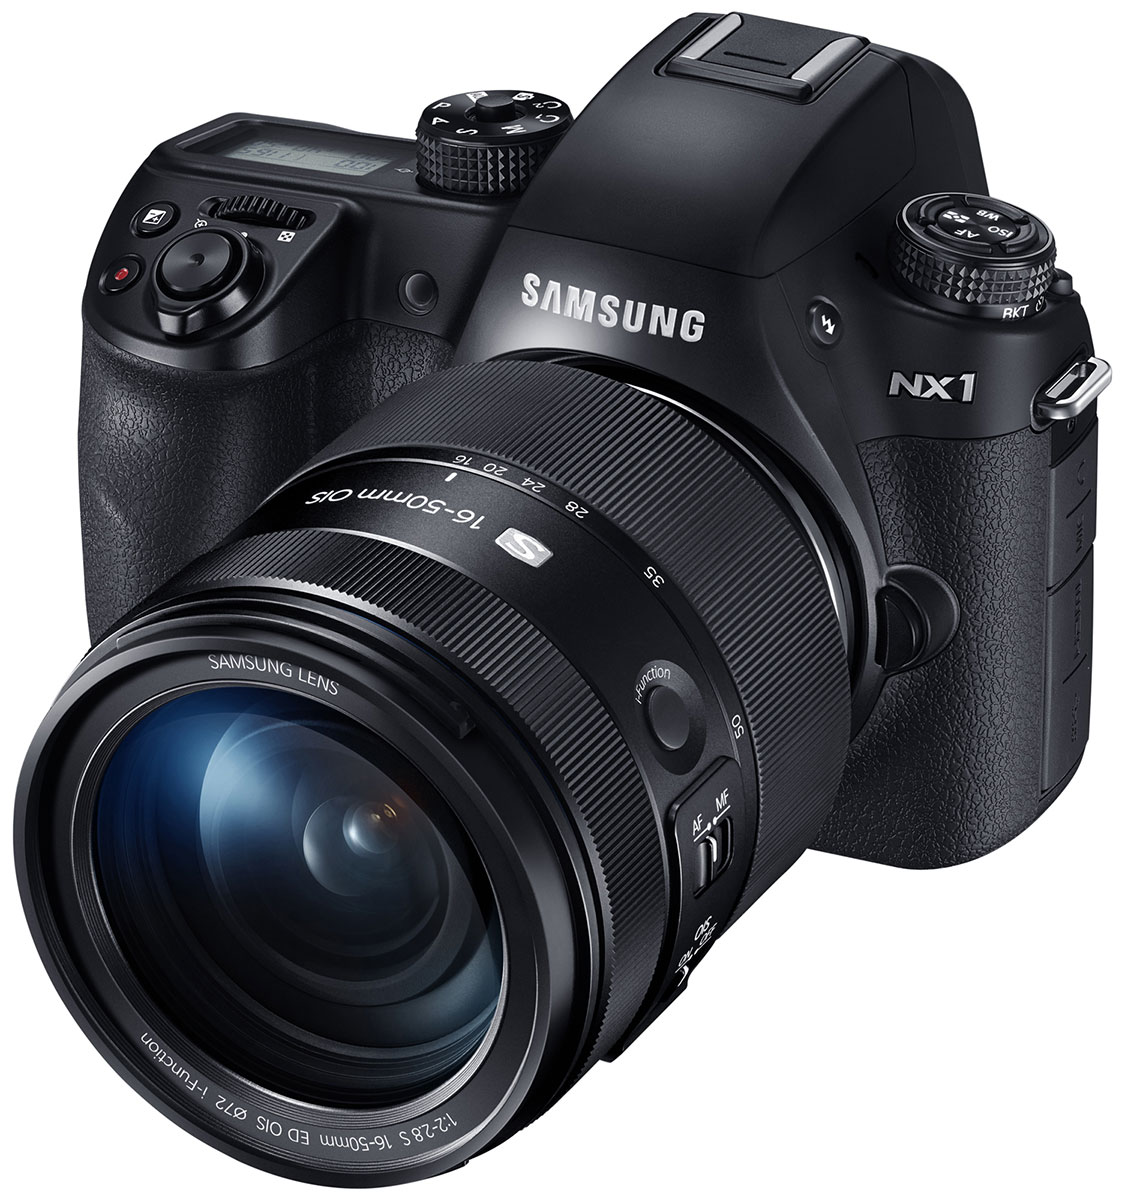 Beautiful rumor - Samsung NX2 prototype with hot interior